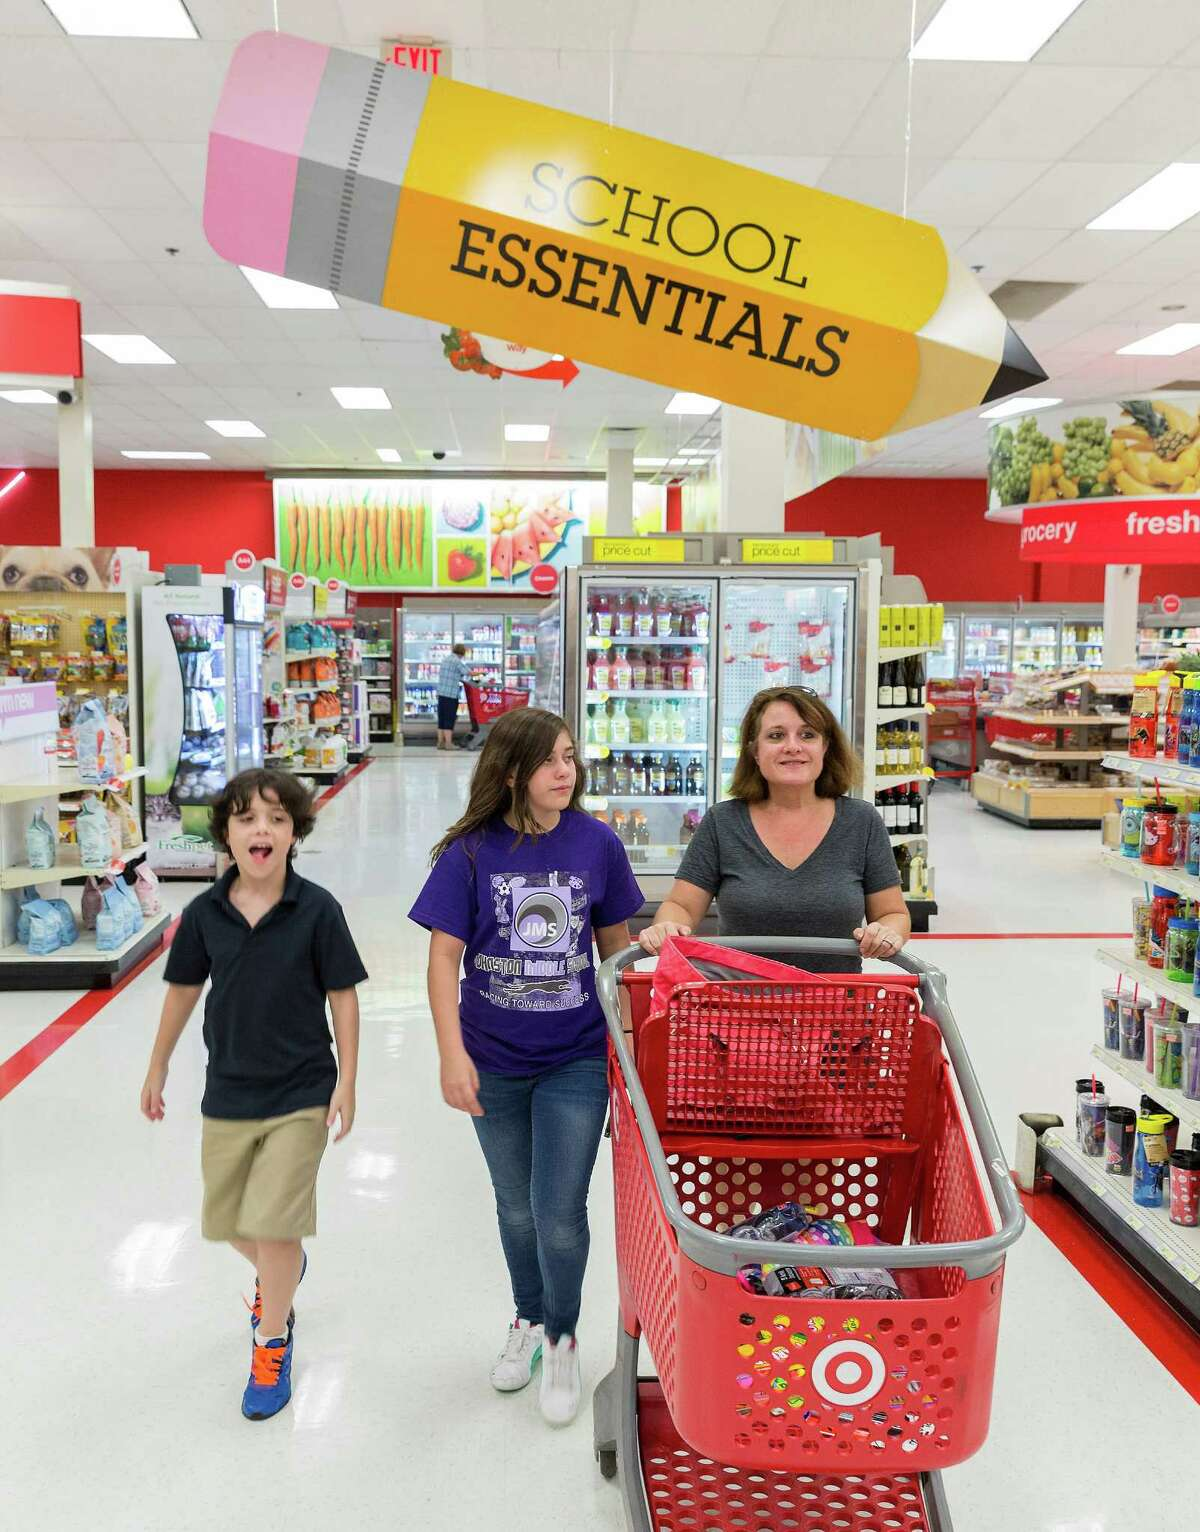 Carrie Consolvo shops with her children Wesly and Ellie at the Target store at 4323 San Felipe. Labor Day Weekend. Mom Carrie Consolvo shops for school supplies with 11-year-old Ellie Consolvo and 10-year-old Wesly Consolvo. Wednesday August 27, 2014 (Craig H. Hartley/For the Chronicle)